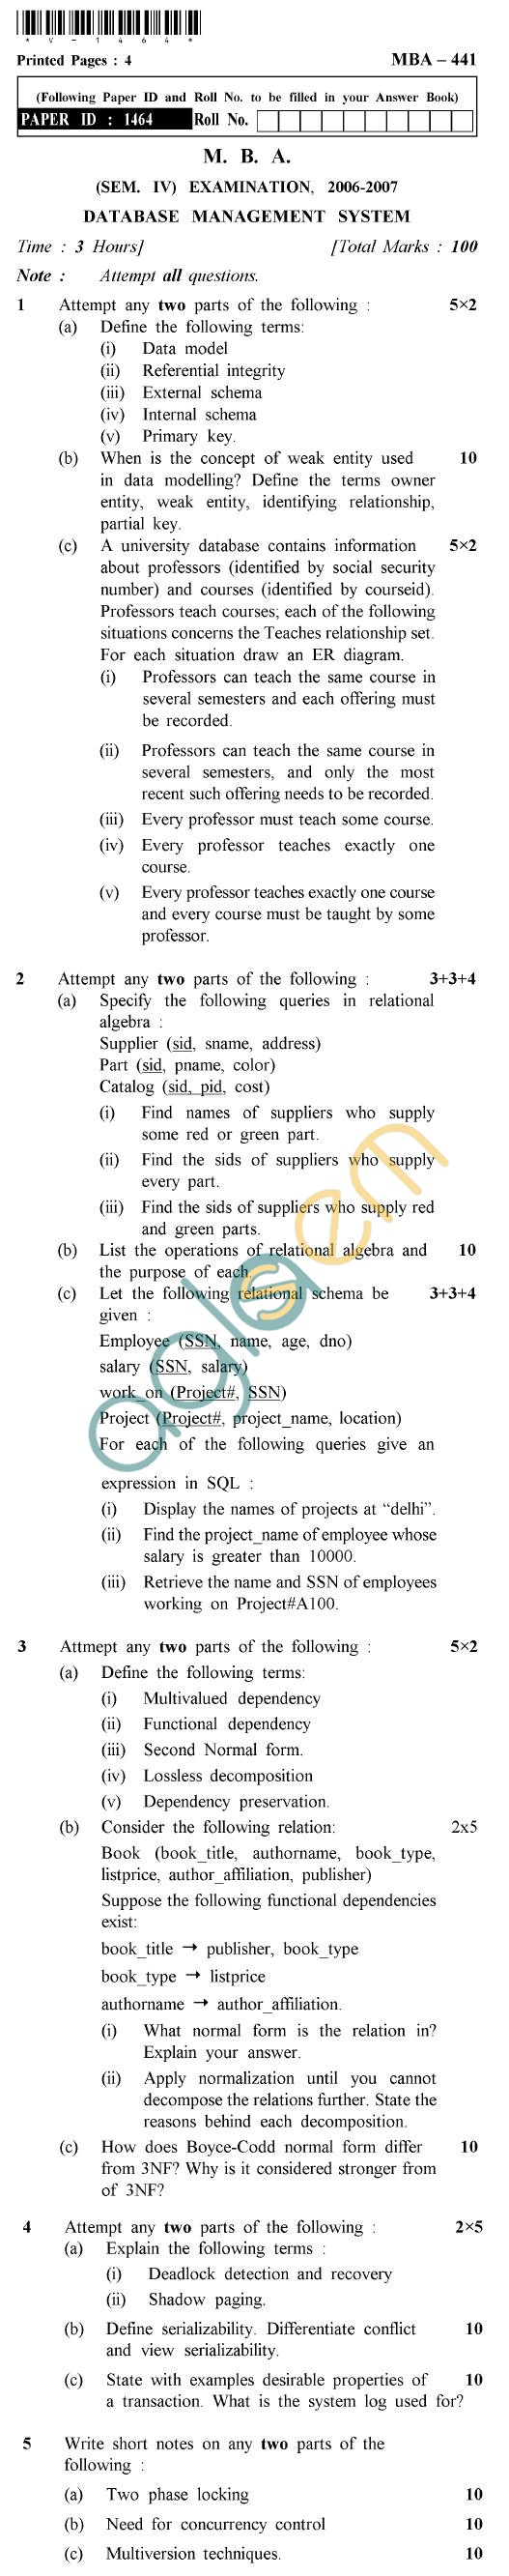 UPTU  MBA Question Papers - MBA-441-Database Management System